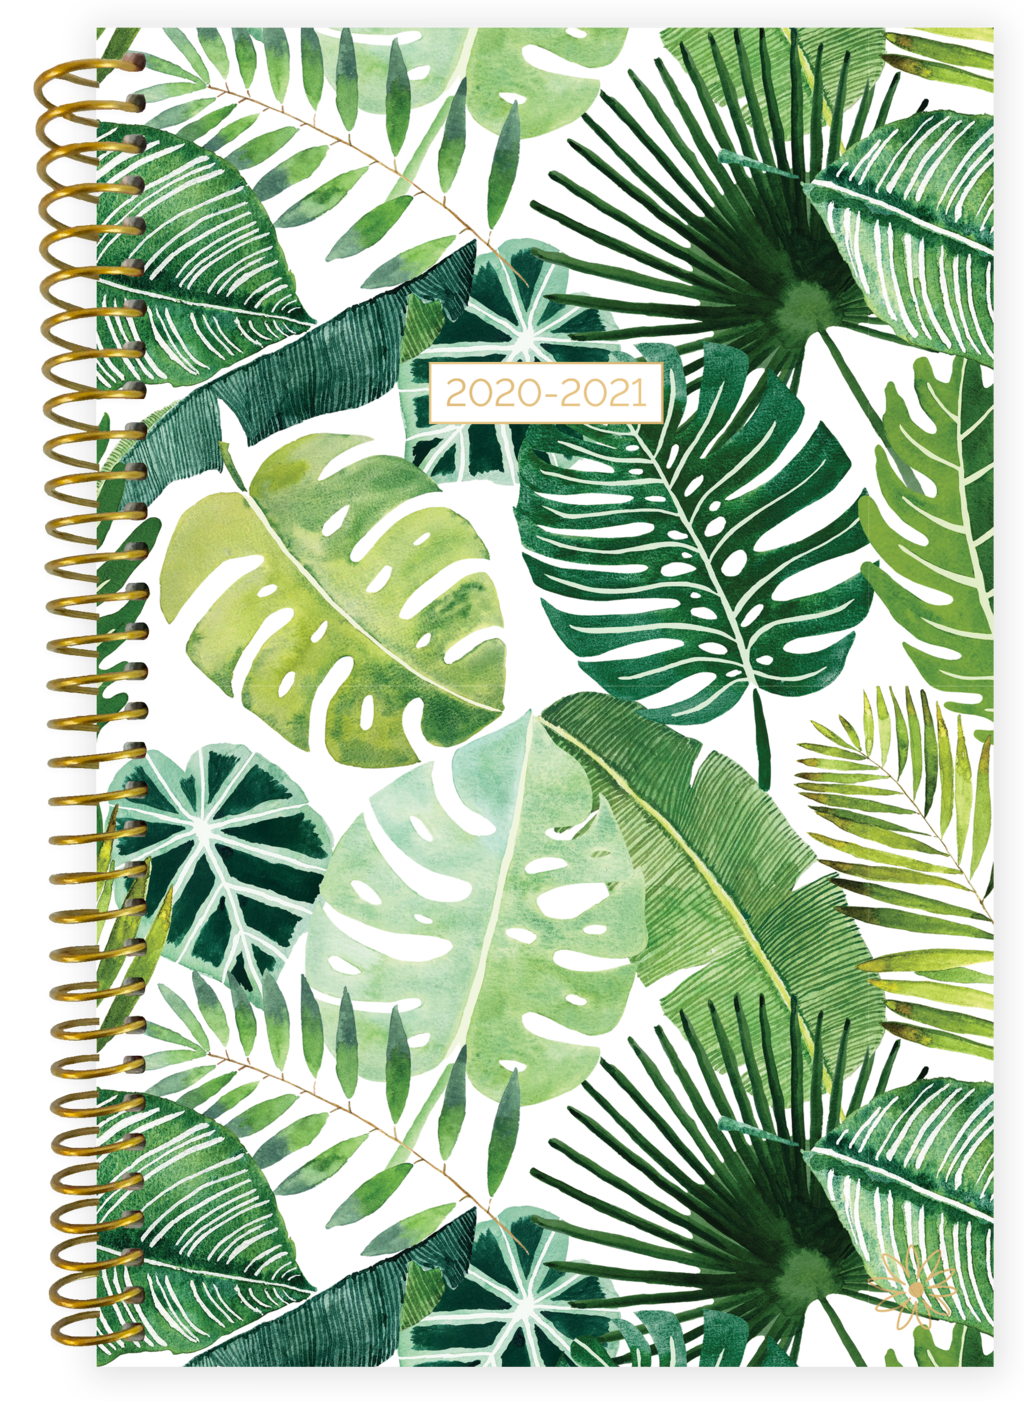 2020-2021 Soft Cover Planner Tropical Palm Leaves